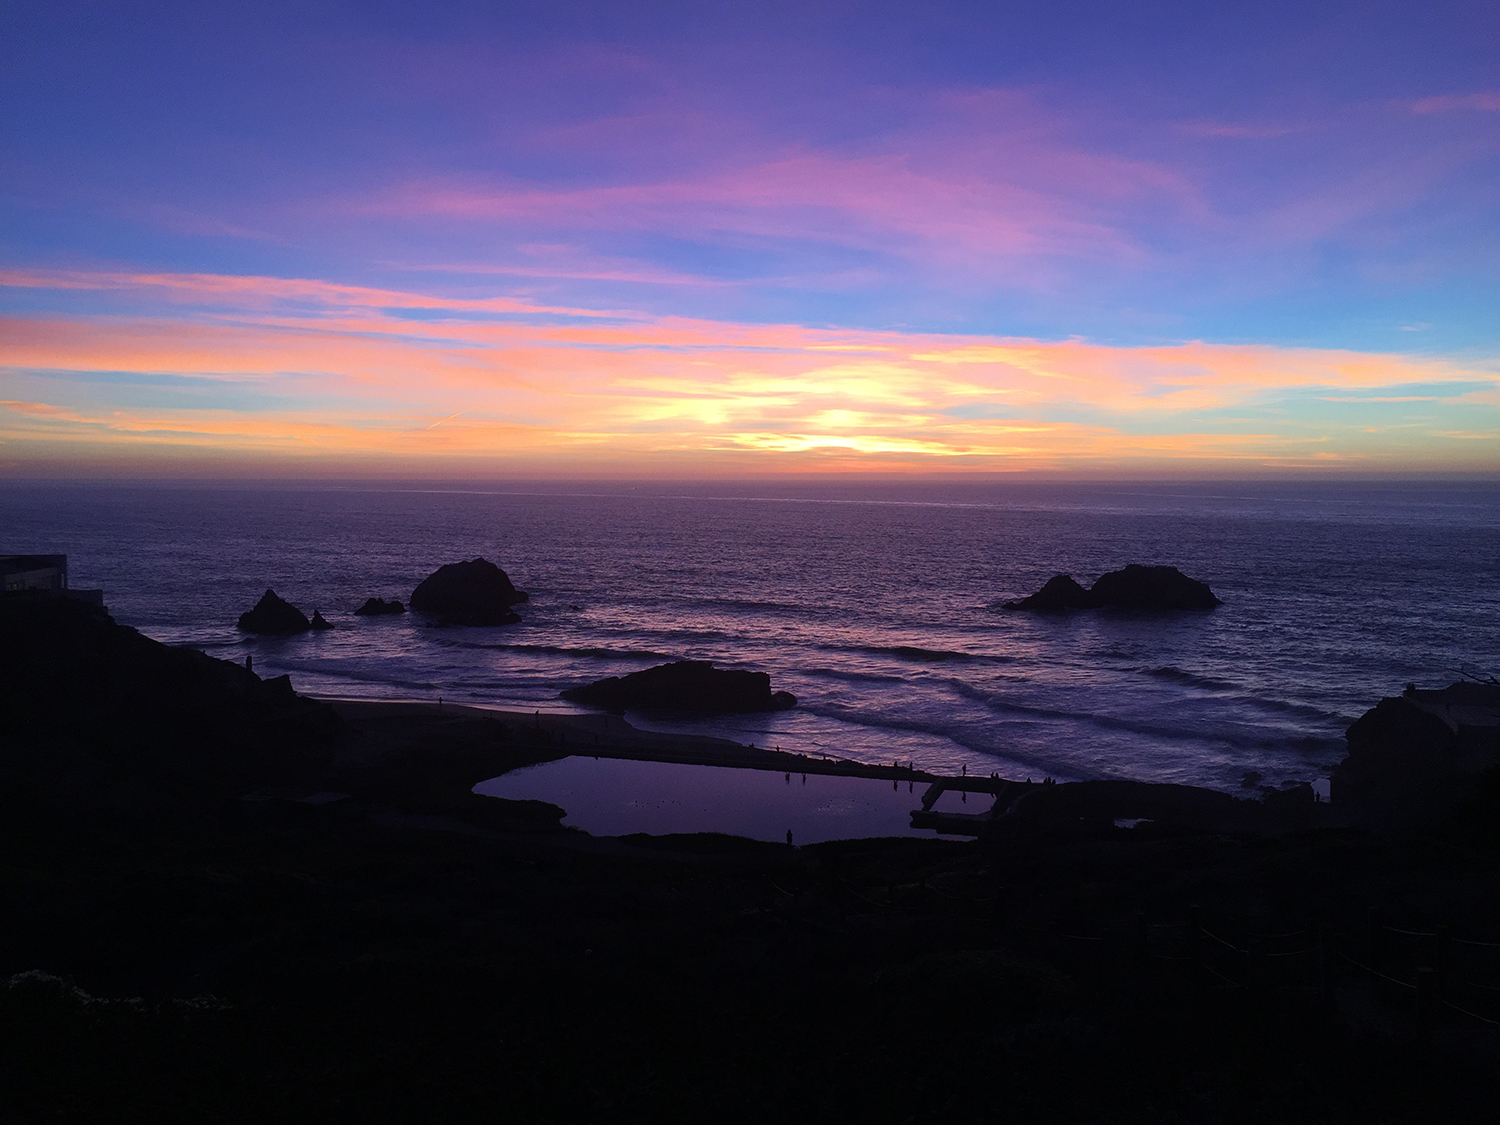 Above the Sutro Baths   6:28 pm